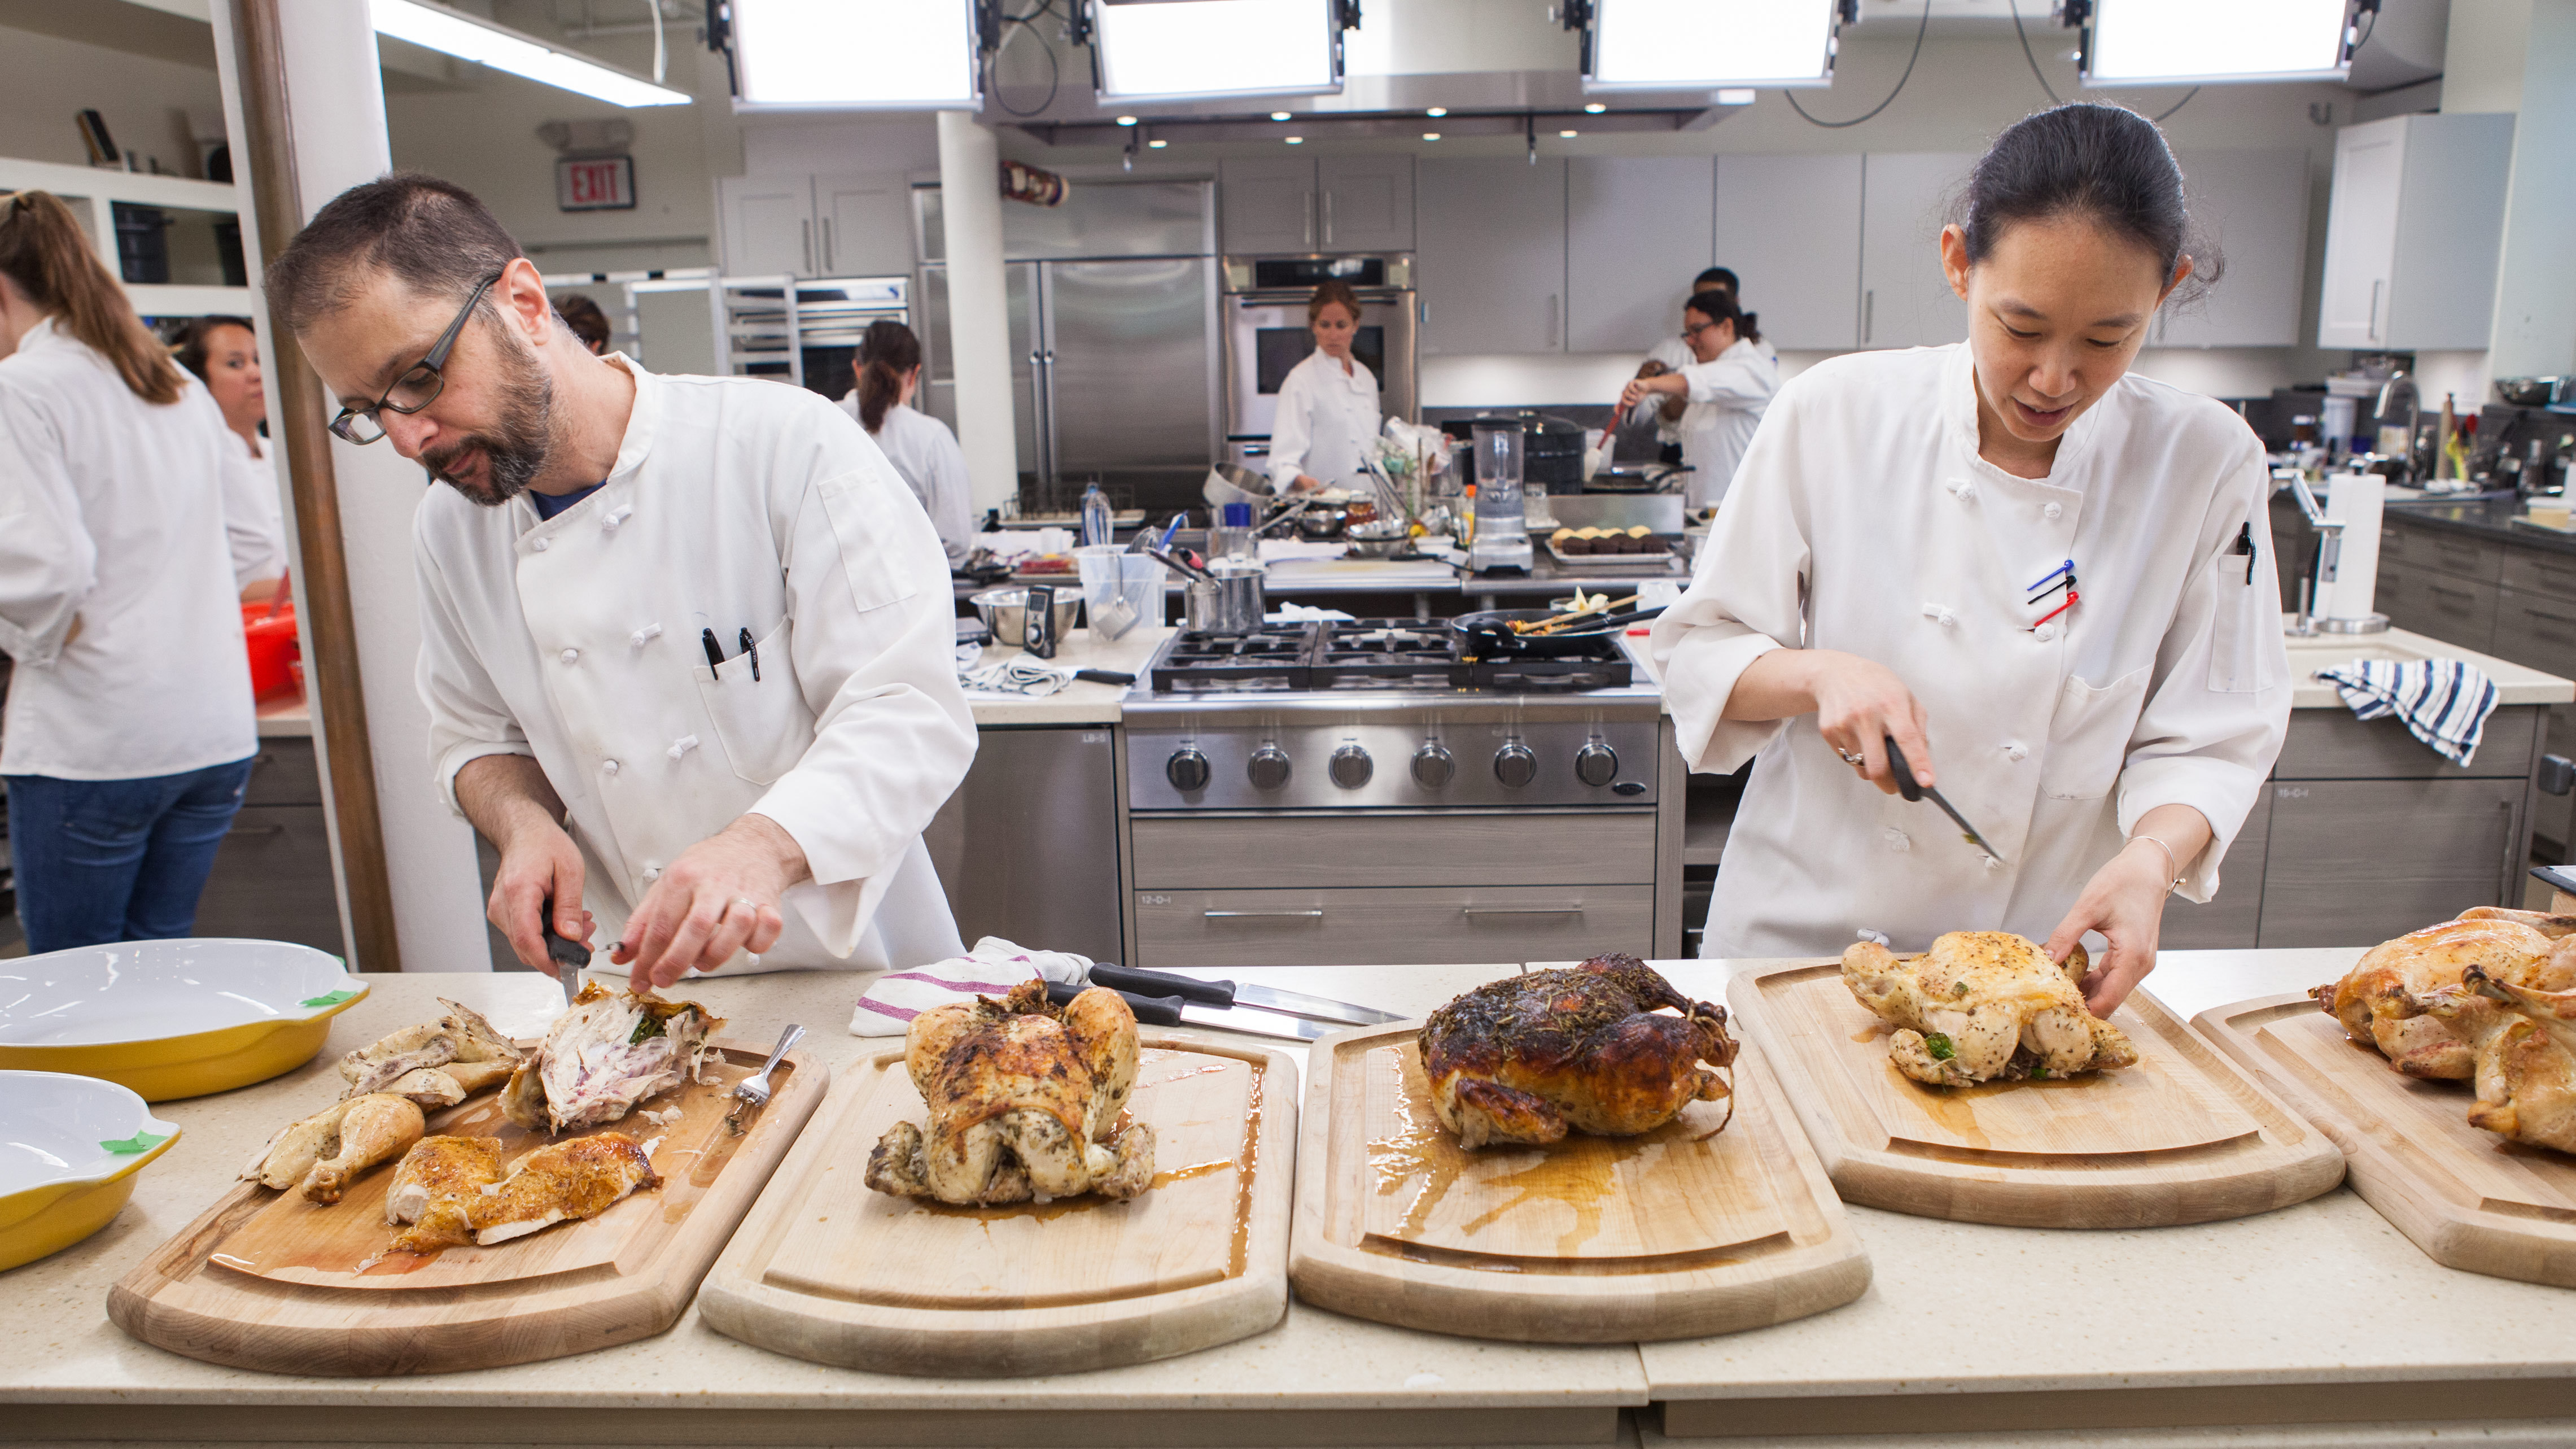 America's Test Kitchen is taking its rigorous recipe system to the next level